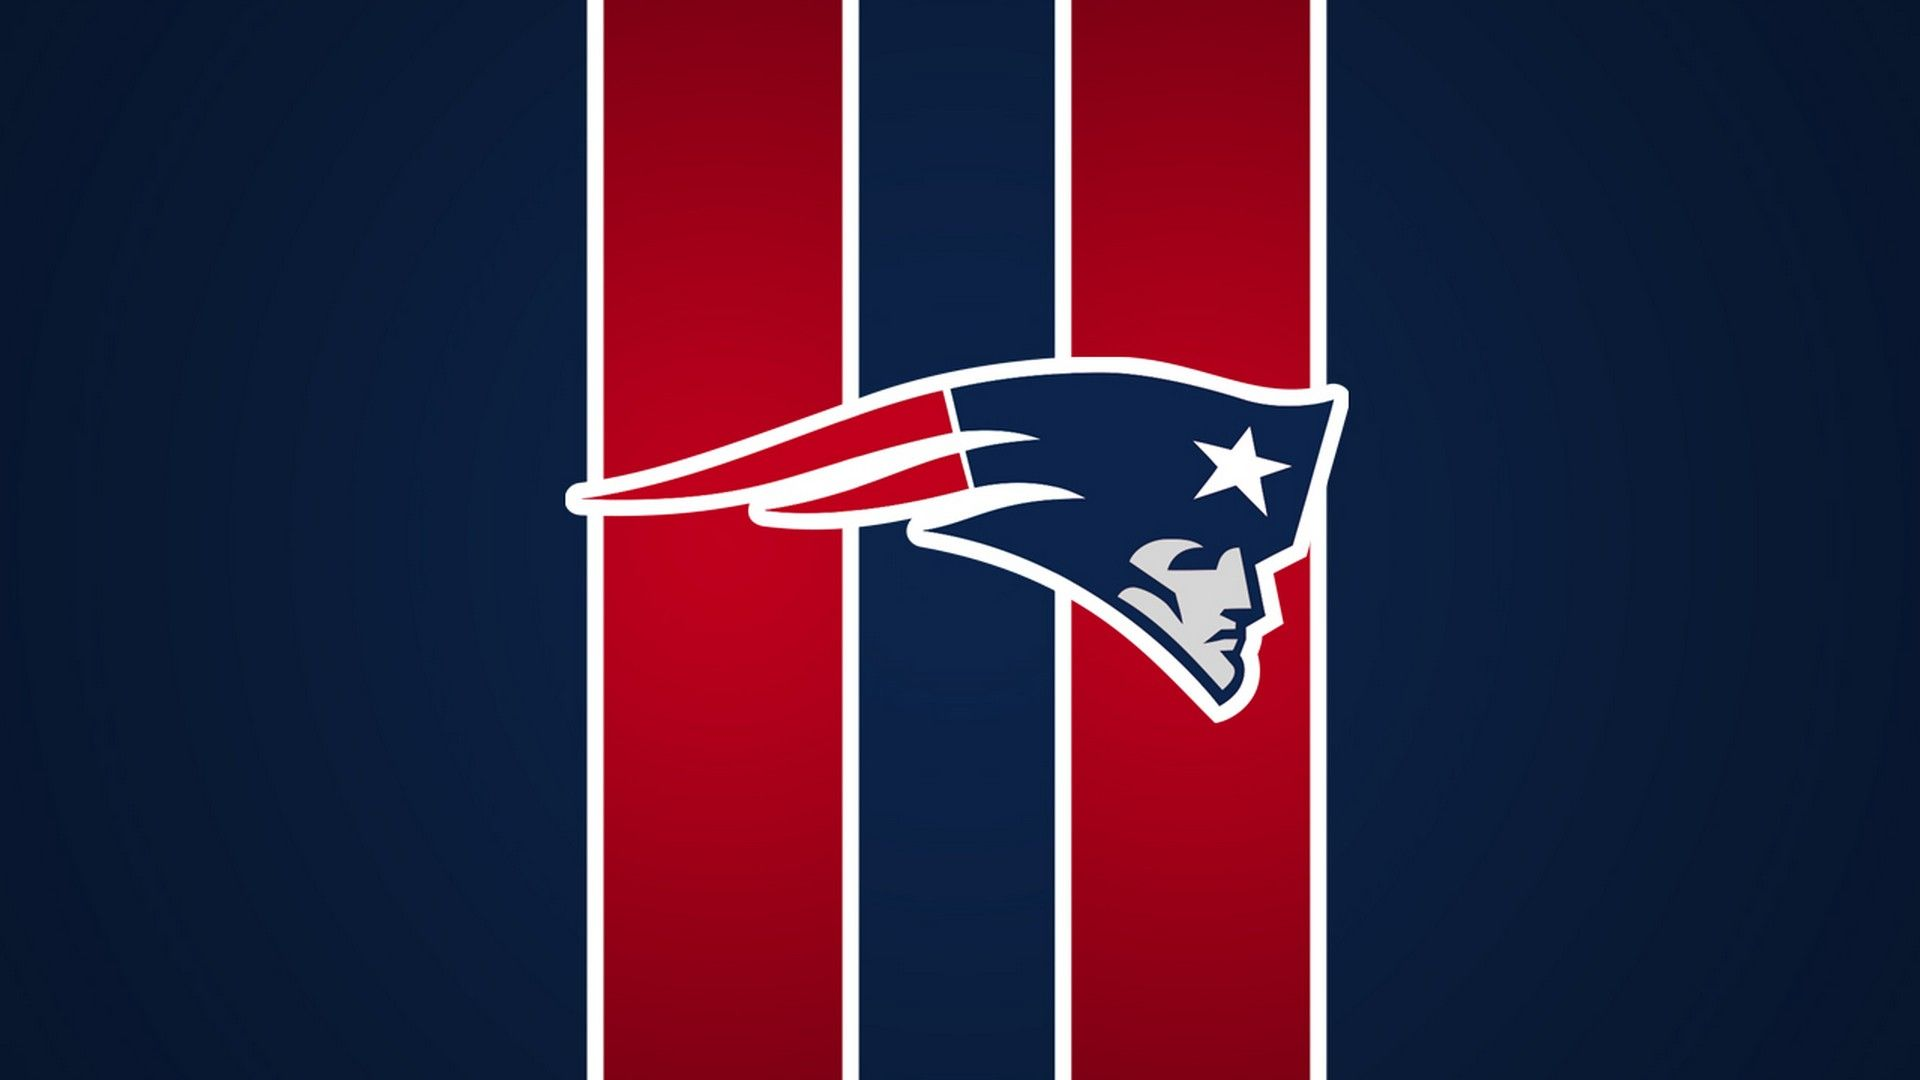 Nfl Wallpapers New England Patriots Wallpaper Patriots Logo England Patriots